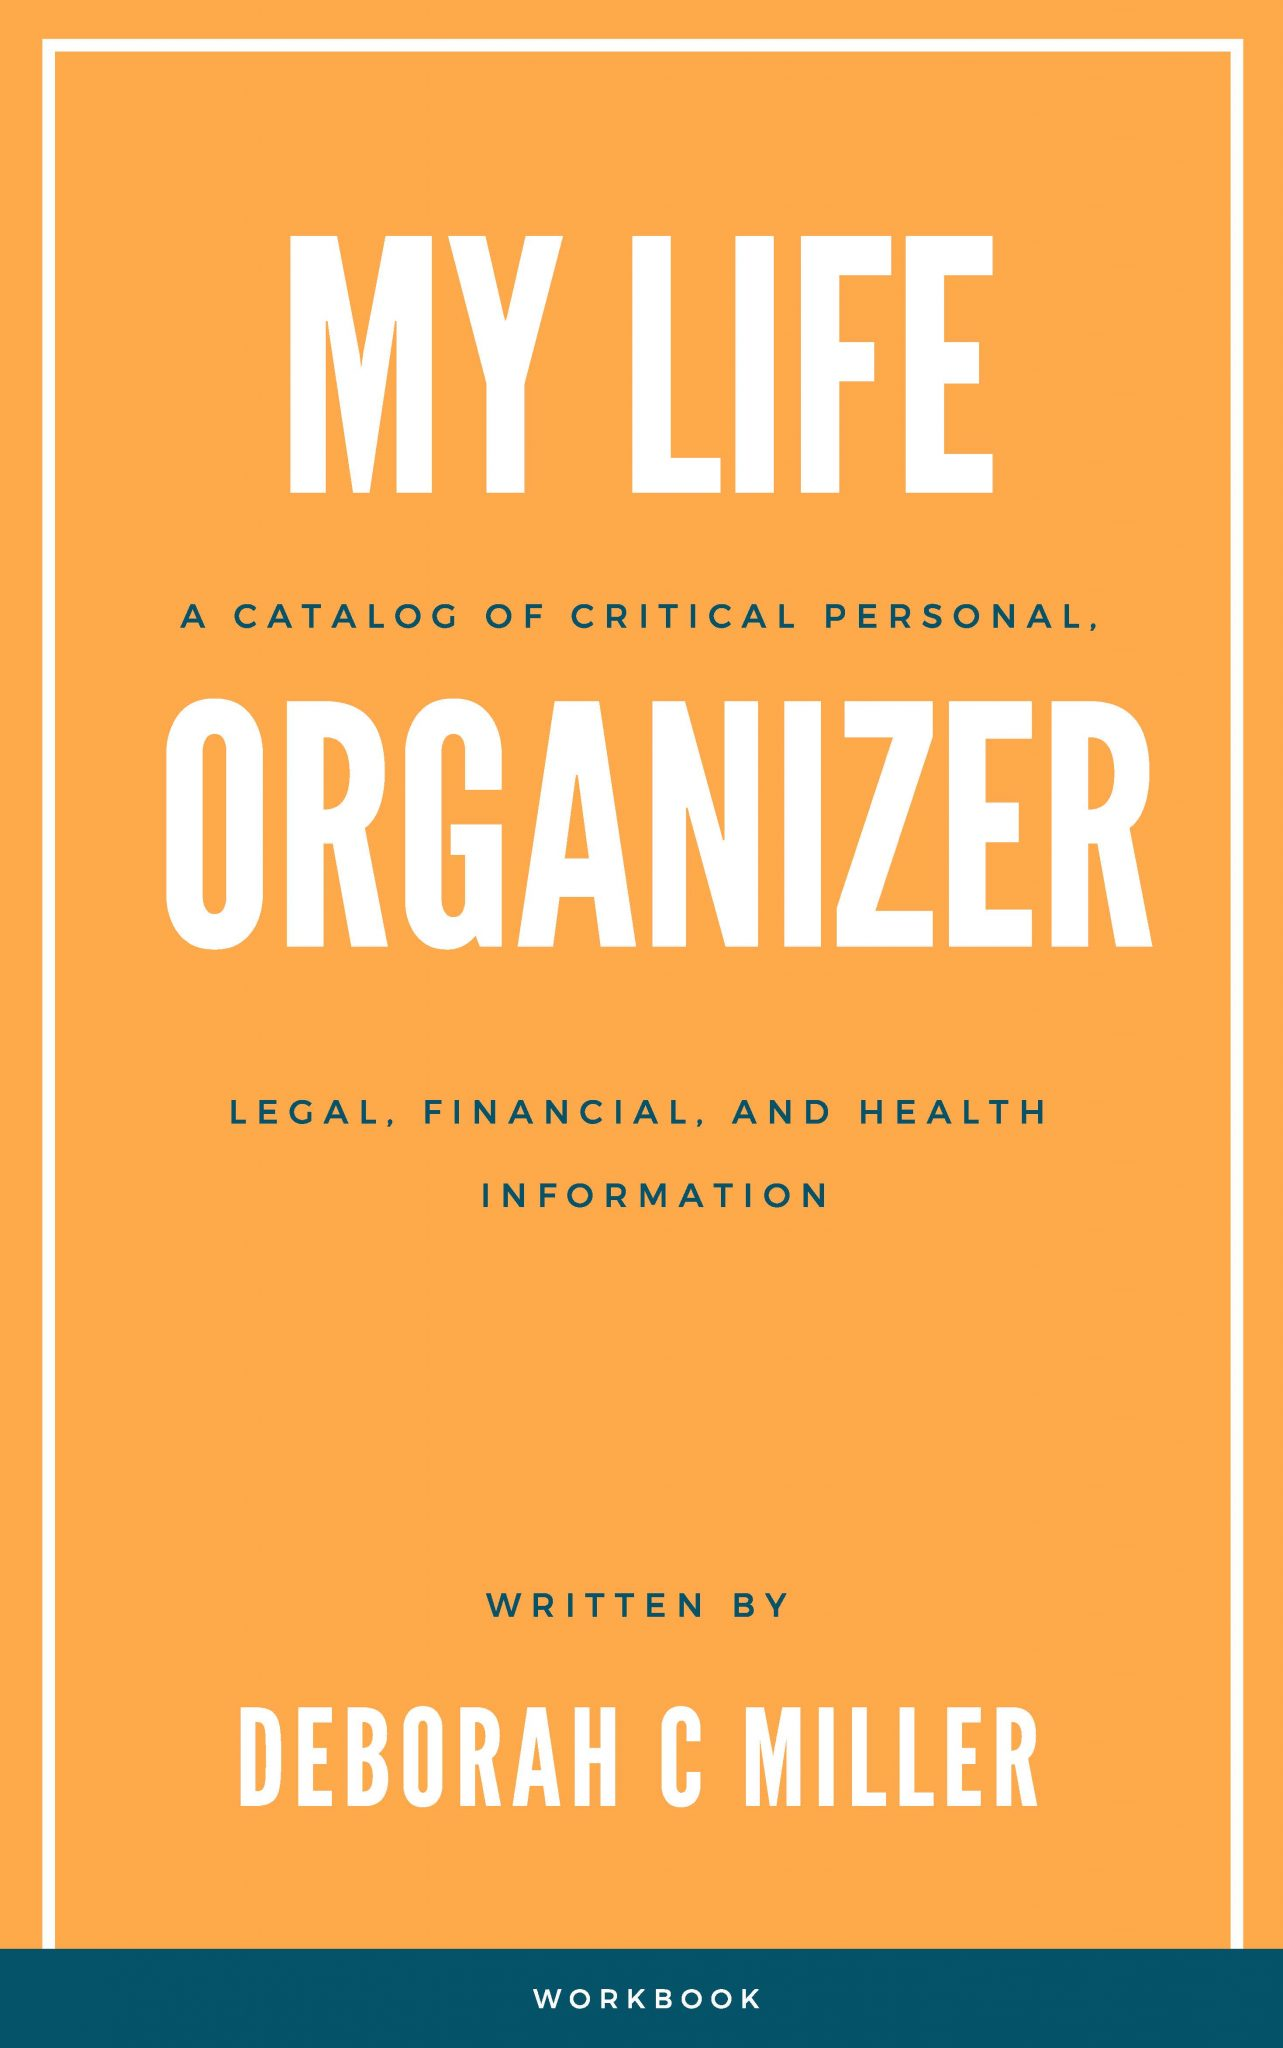 My Life Organizer book